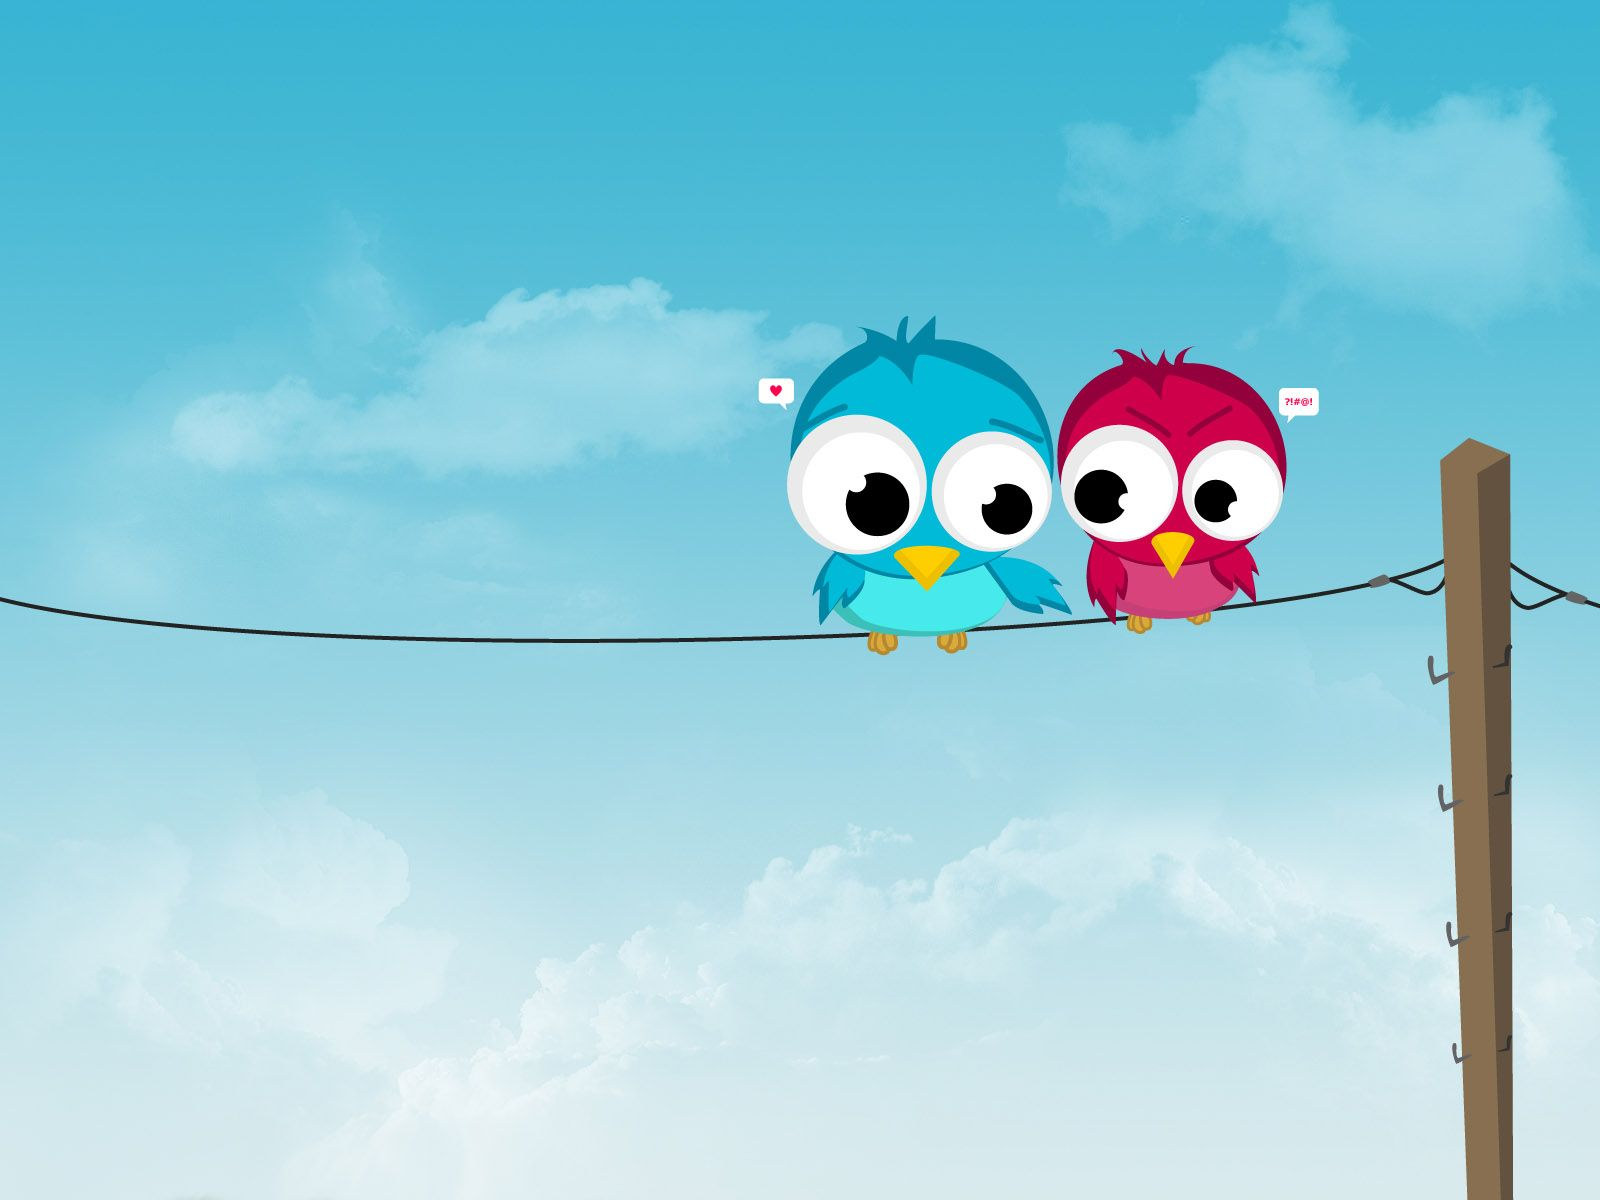 cute wallpaper find best latest cute wallpaper for your pc desktop background mobile phones